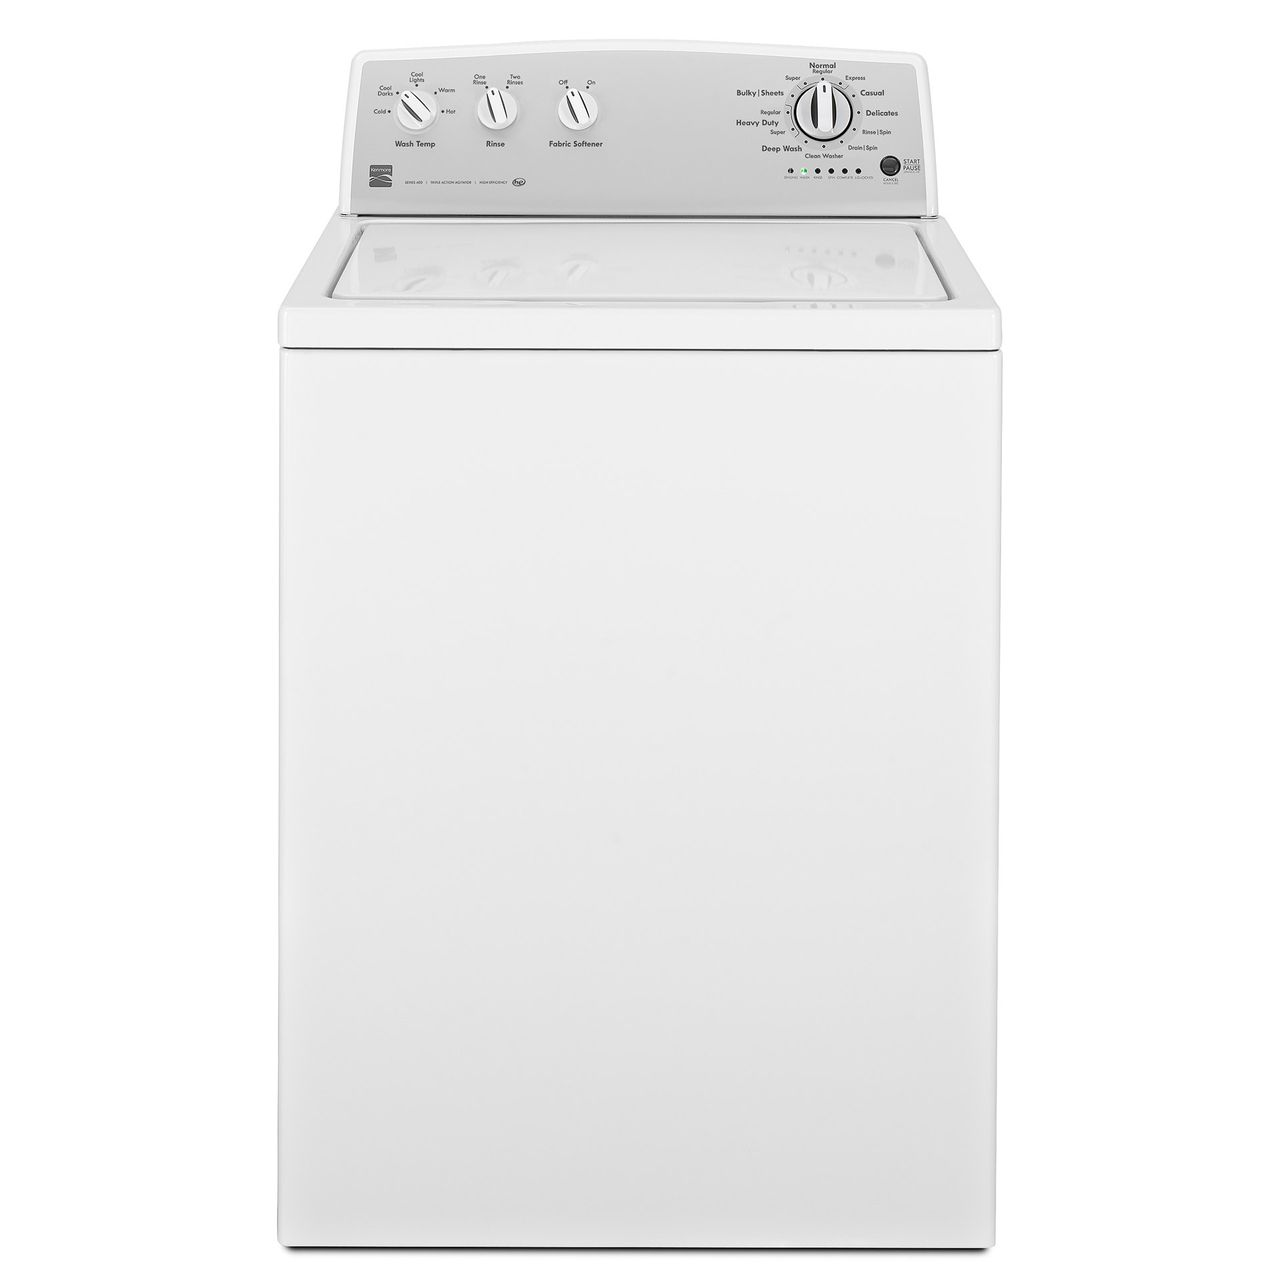 kenmore 22102 top load washer